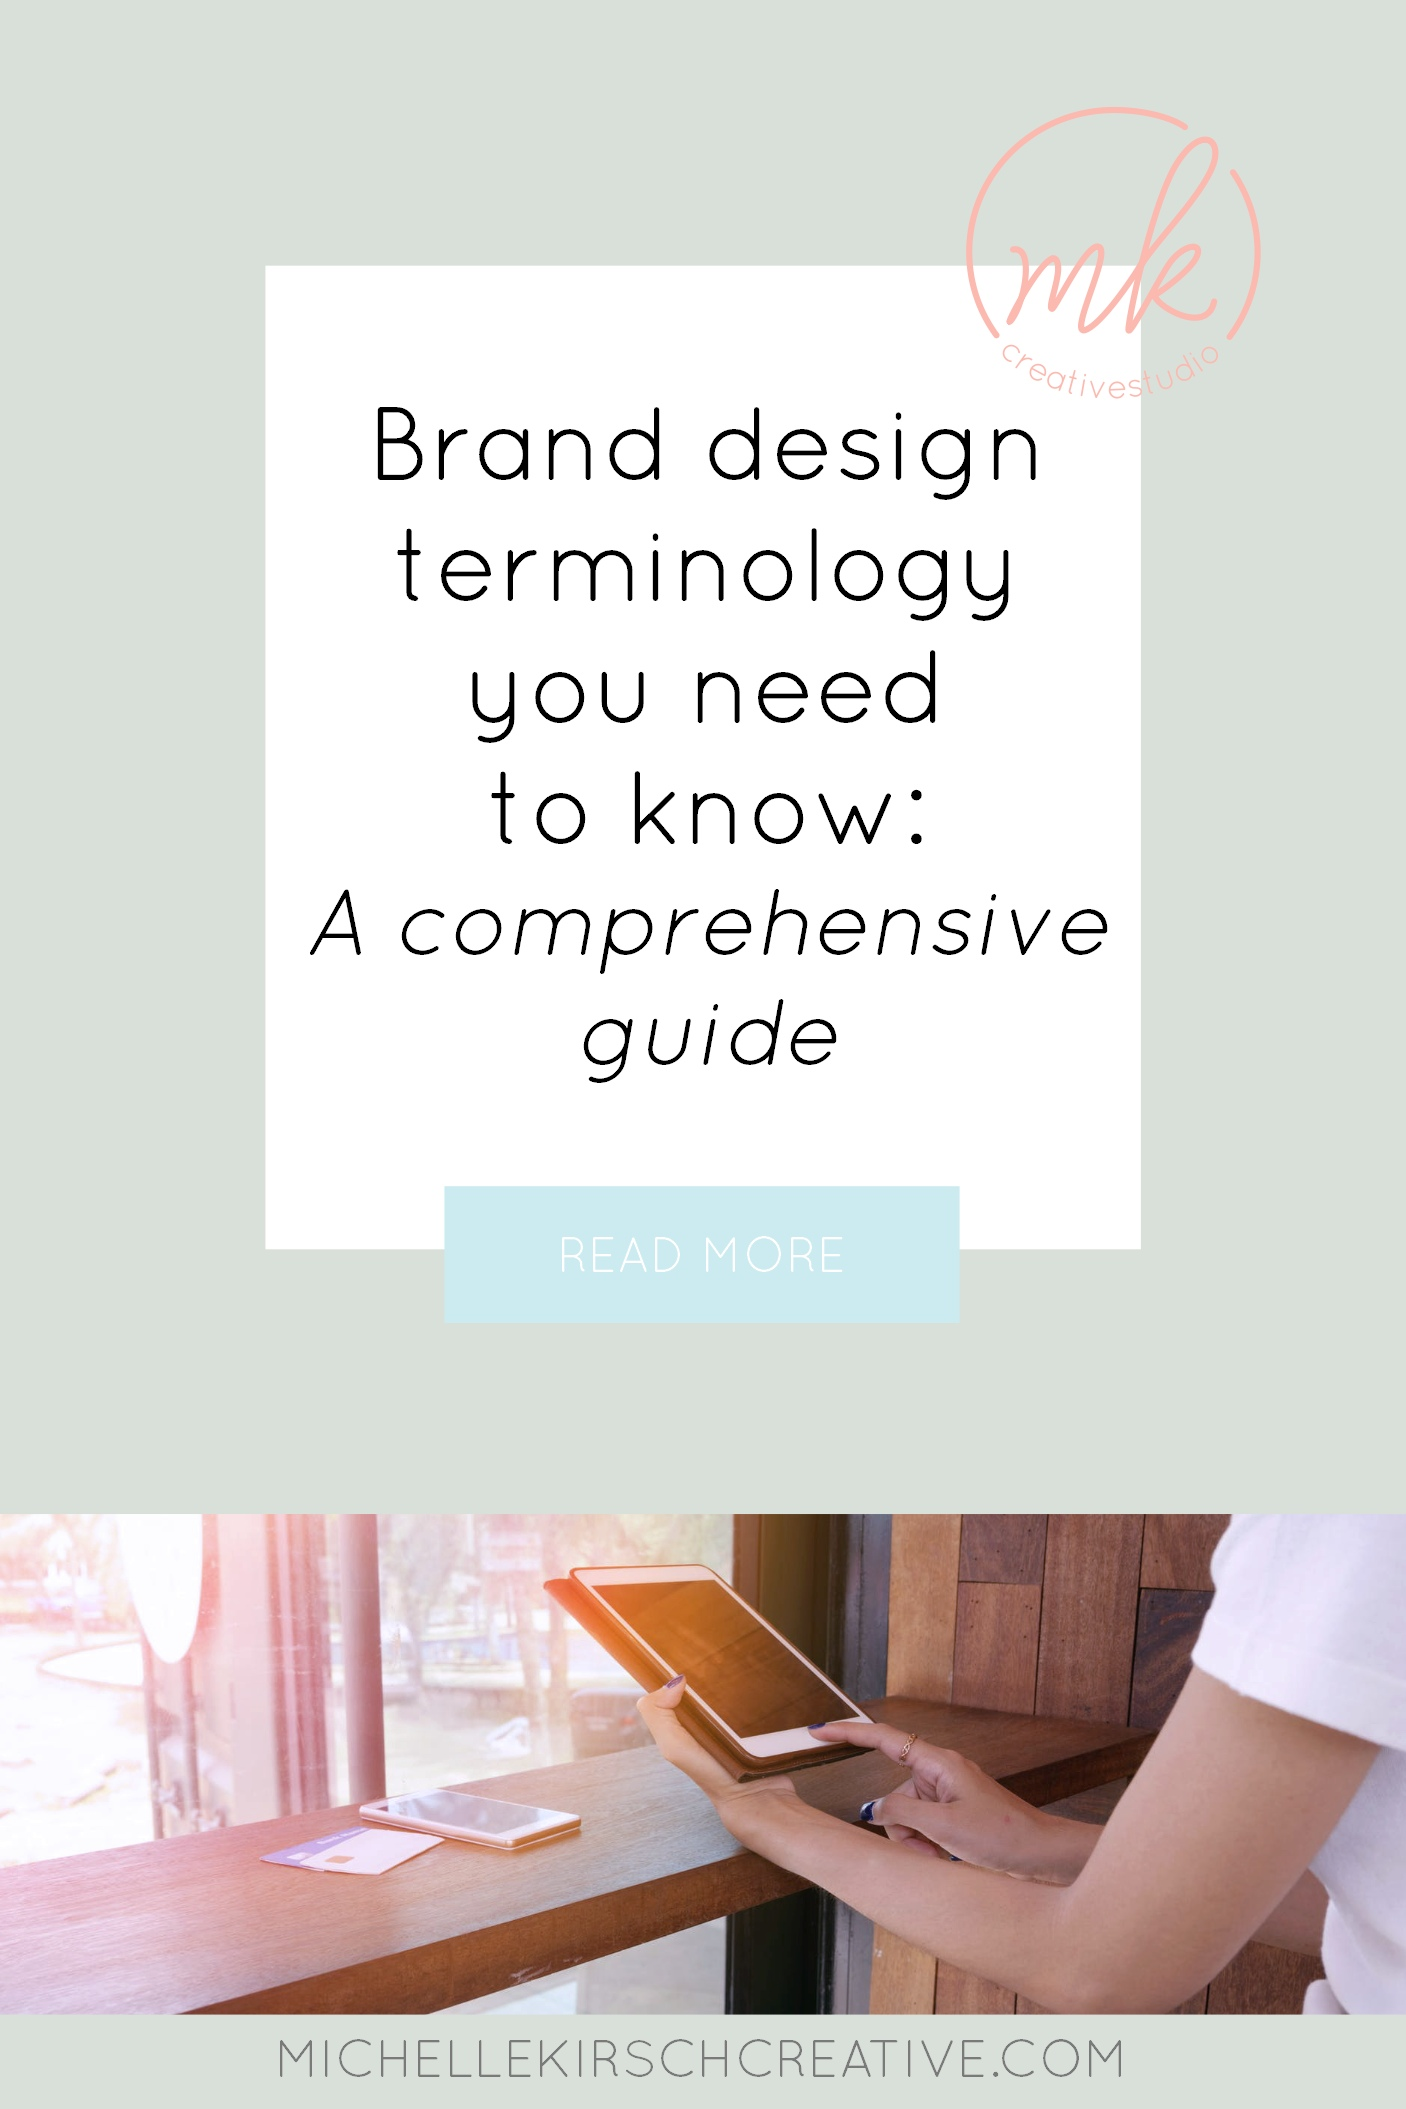 Brand design terminology you need to know: A comprehensive guide